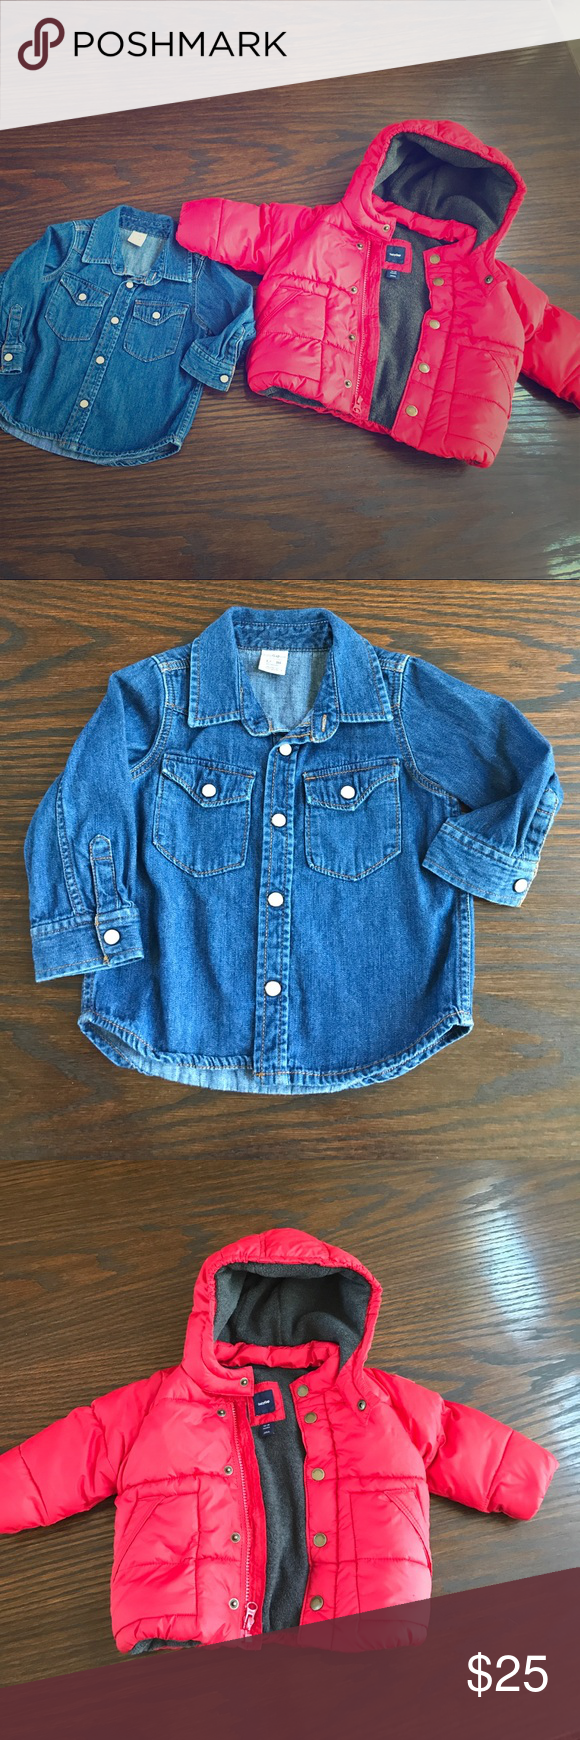 179ee292e161 Baby GAP Boys Jacket and Denim Shirt 12-18 Months Red Puff Jacket ...